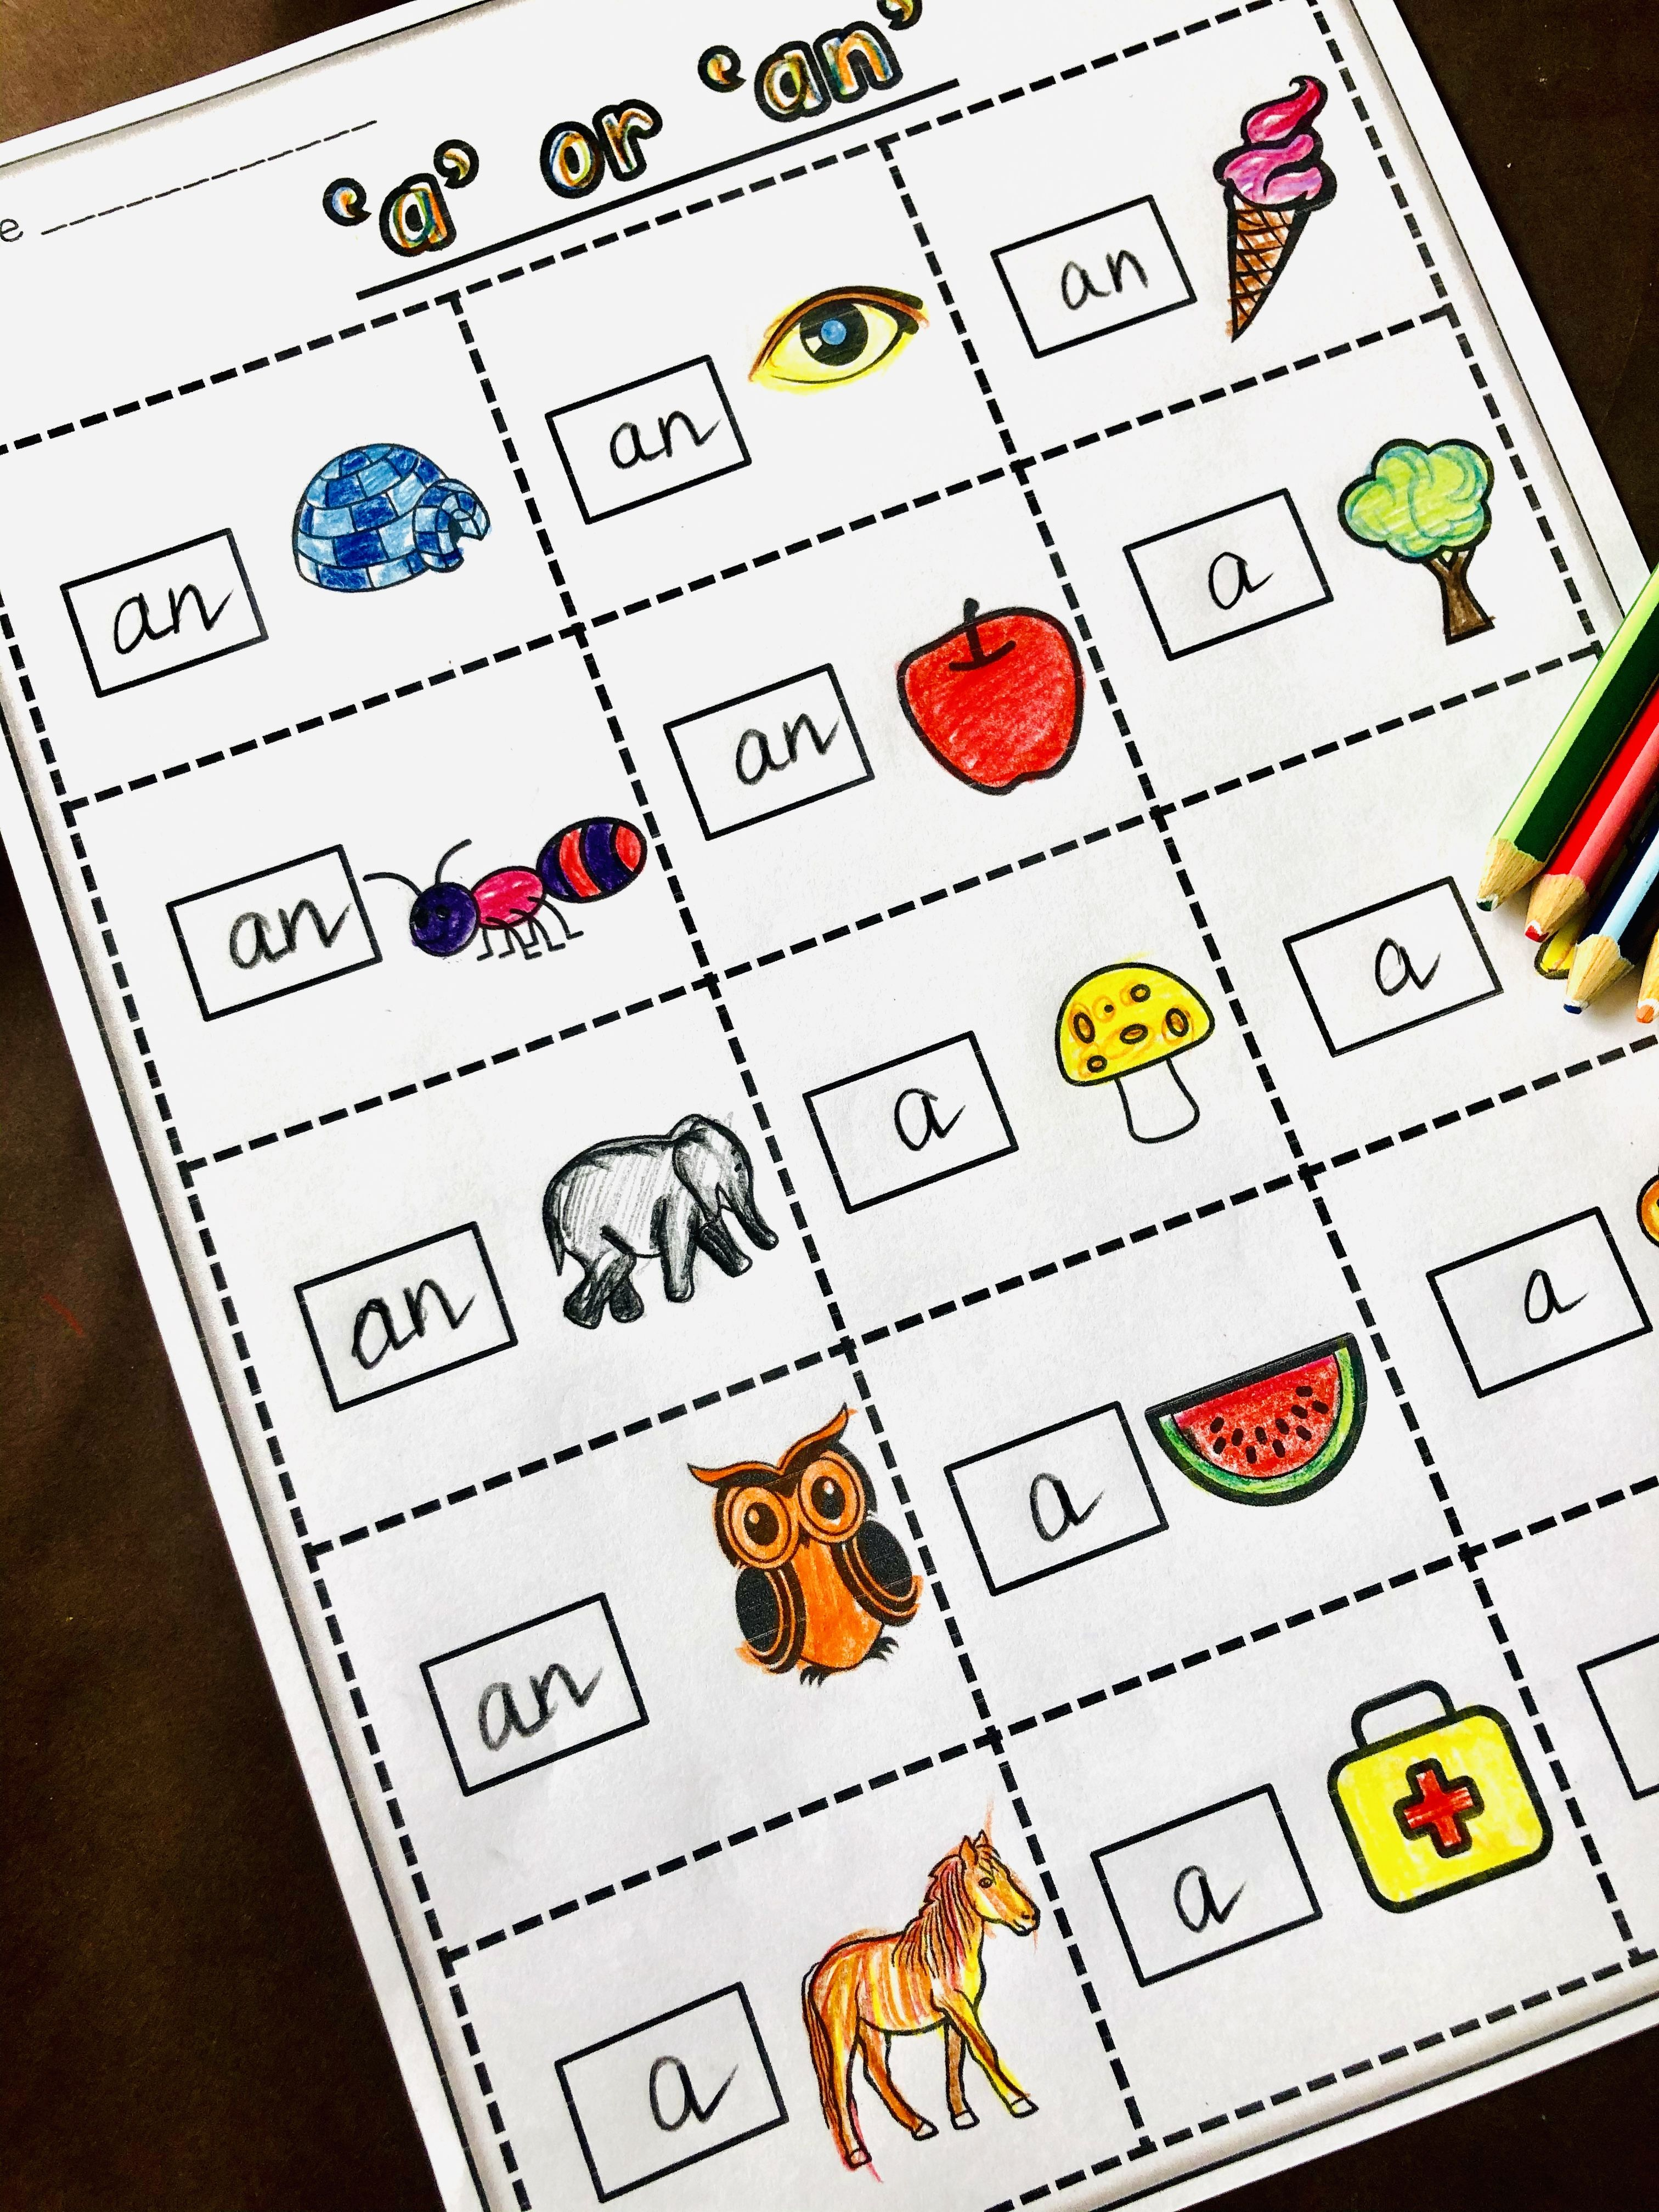 Article A An Worksheet For Kids